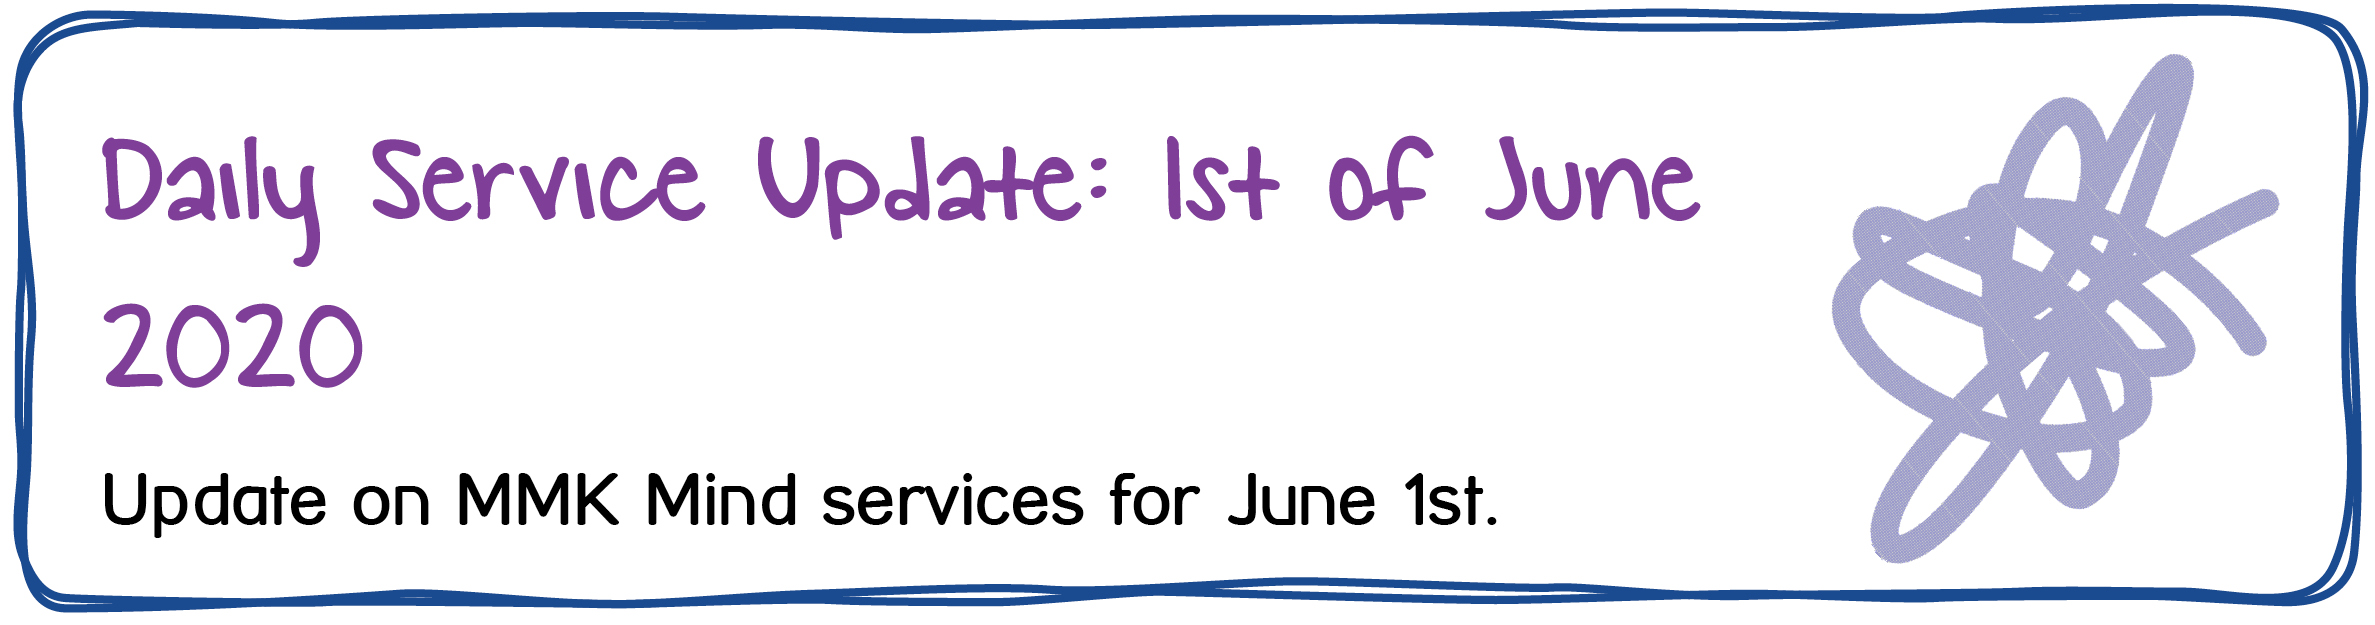 Daily Service Update: 1st of June 2020. Update on MMK Mind services for June 1st.